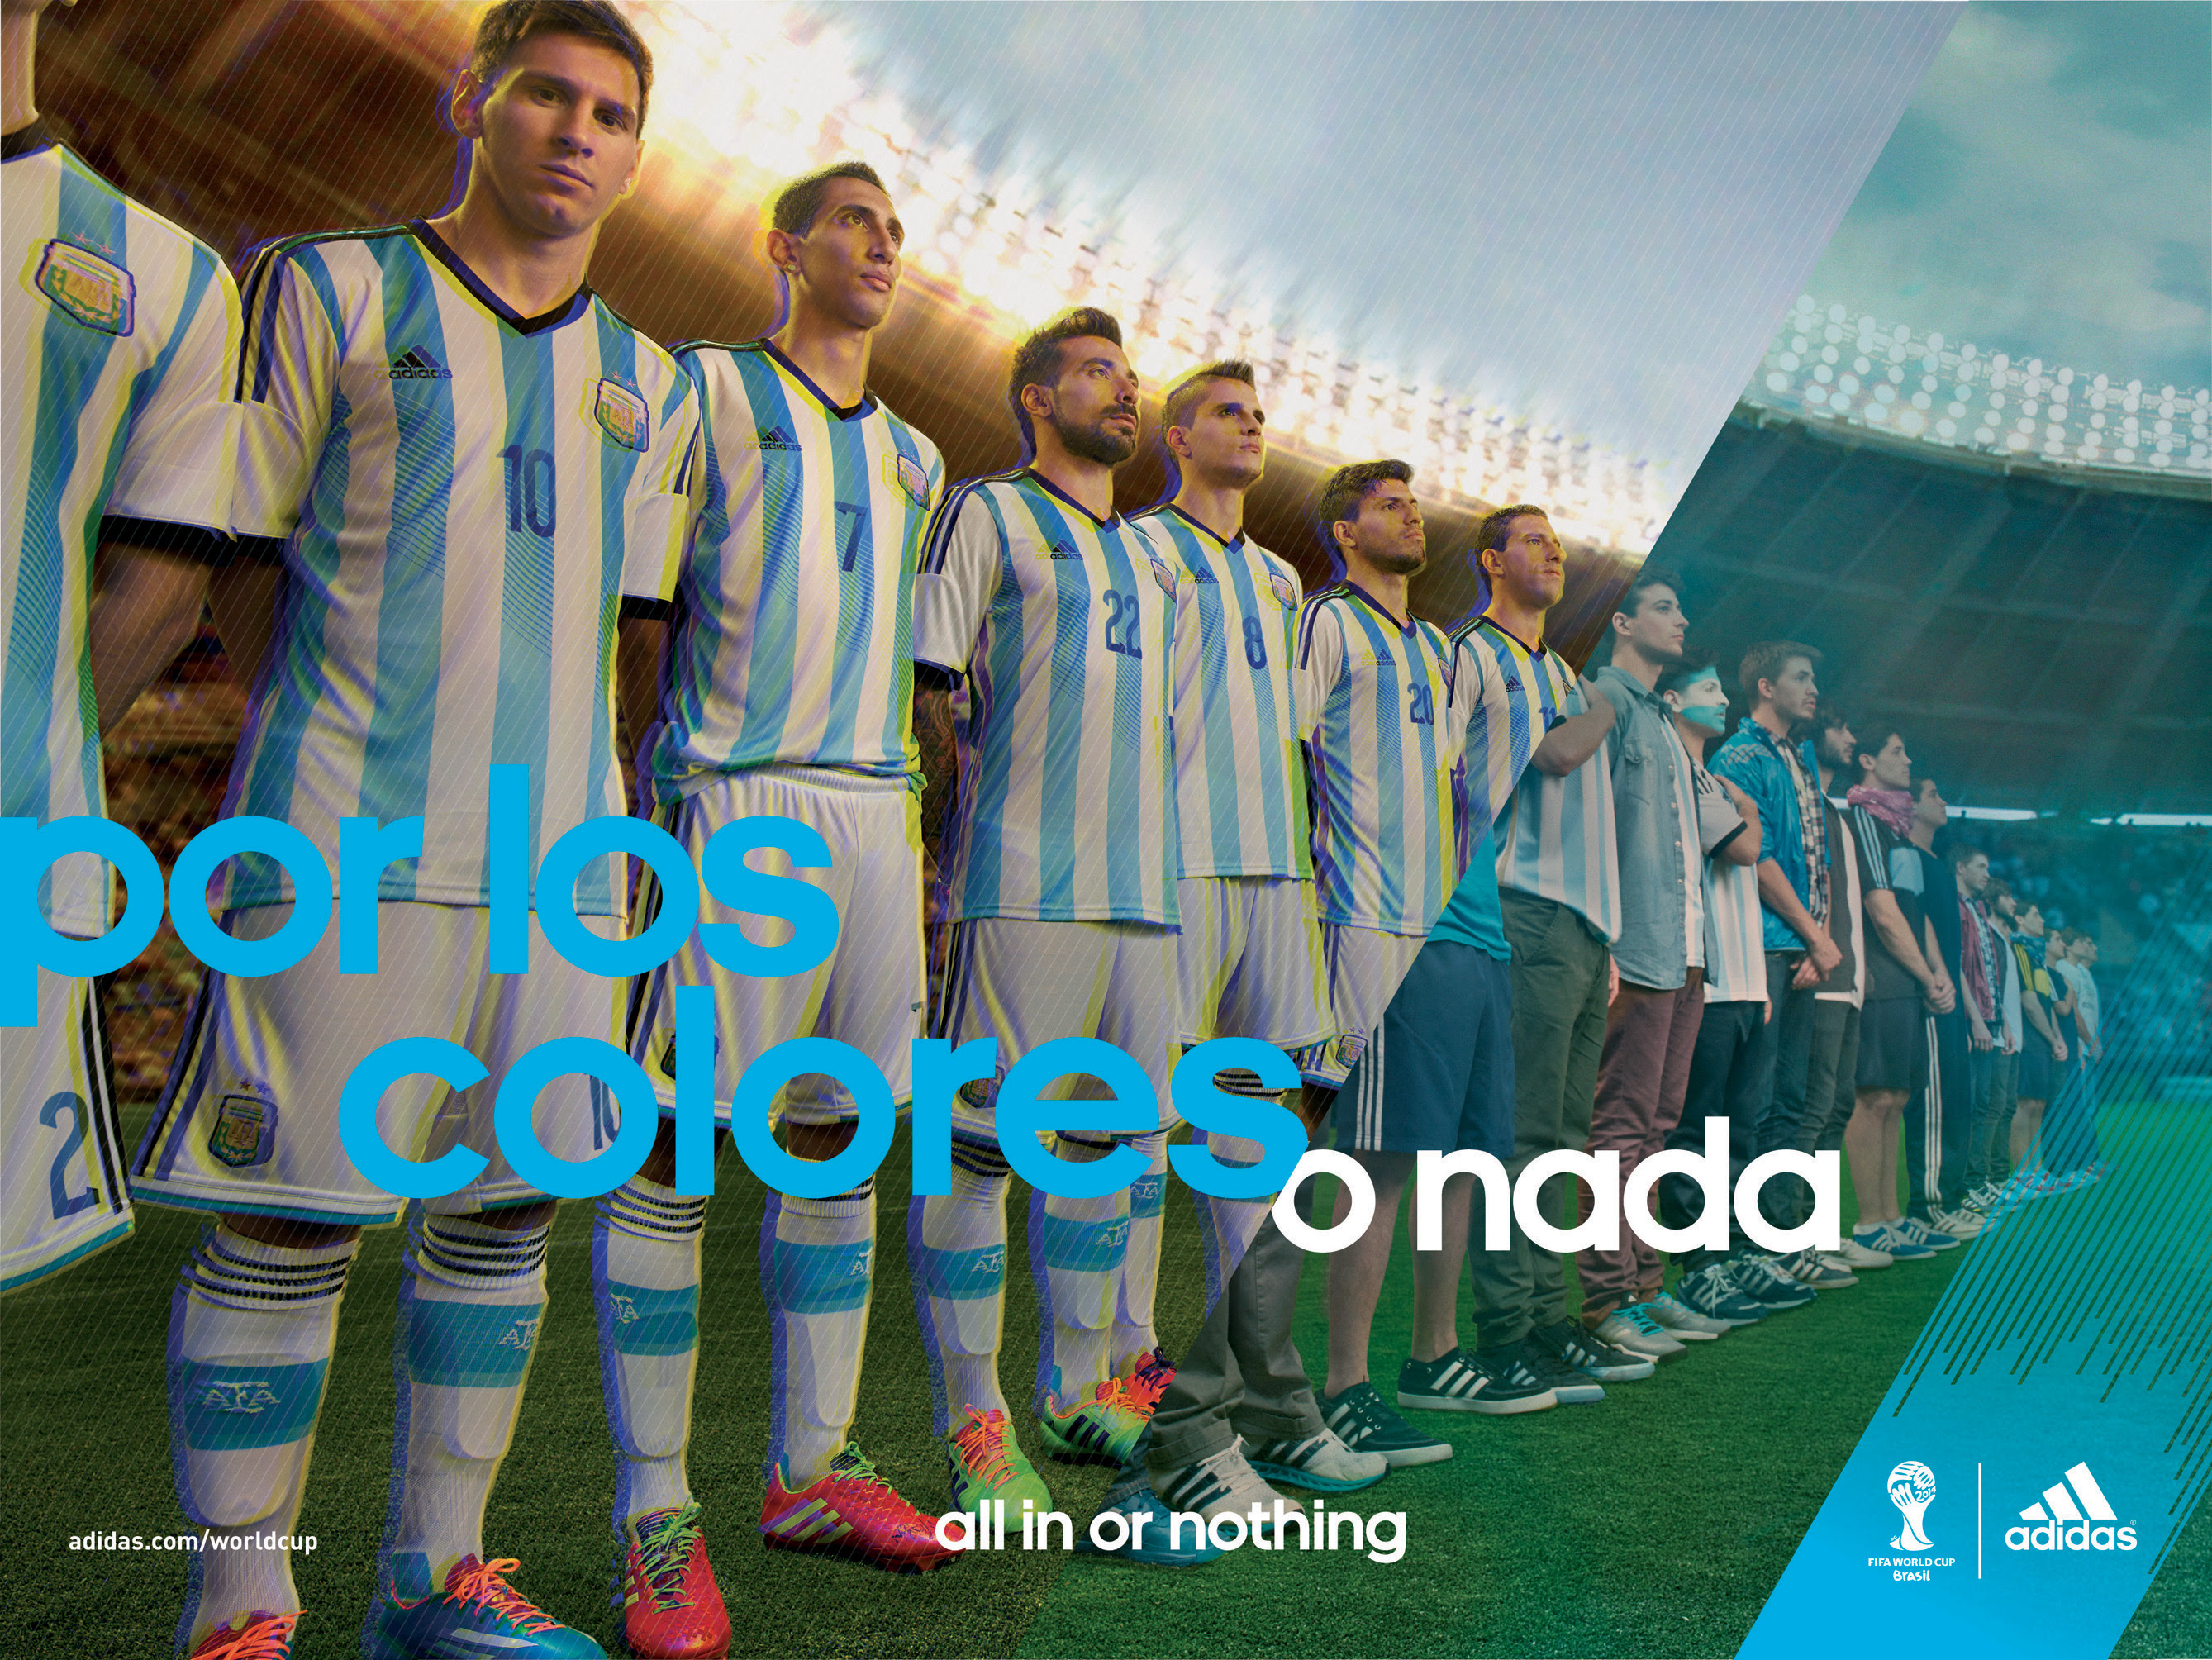 Lionel Messi Adidas Advertisement